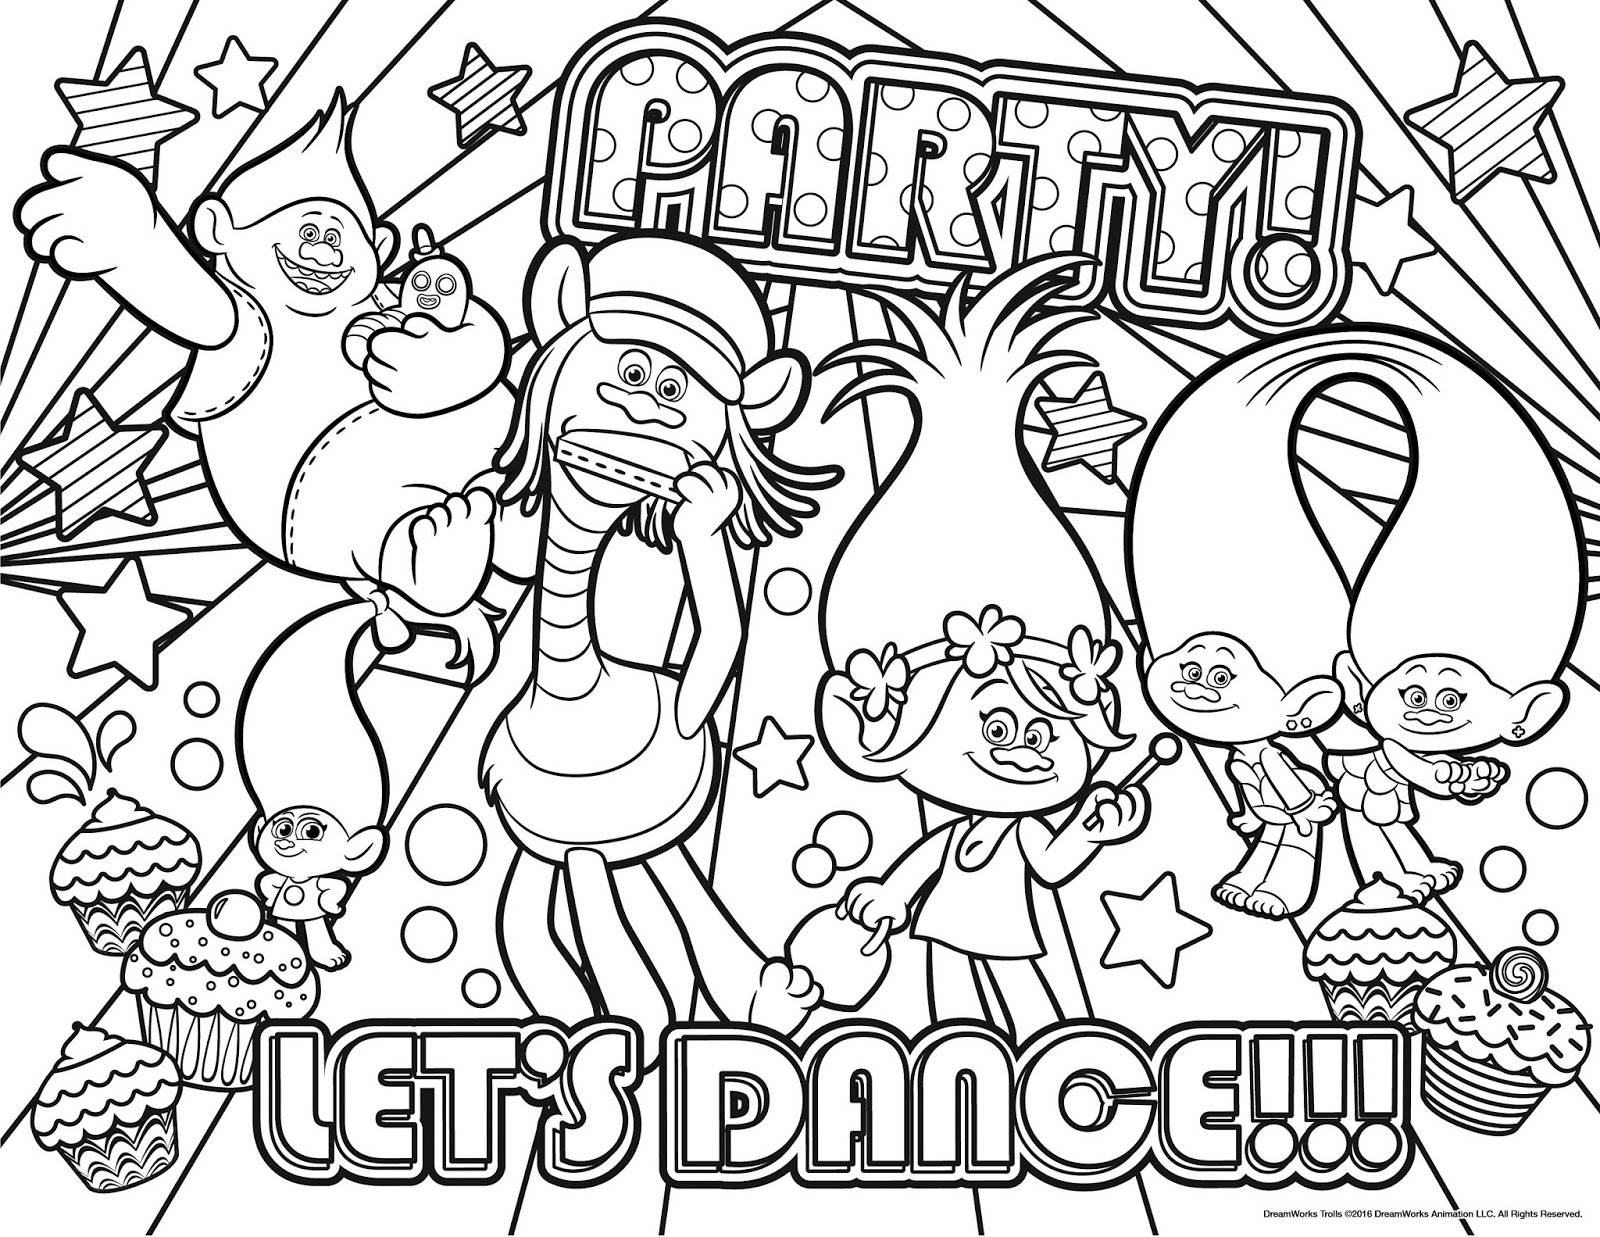 free coloring pages trolls trolls movie coloring pages best coloring pages for kids trolls coloring free pages